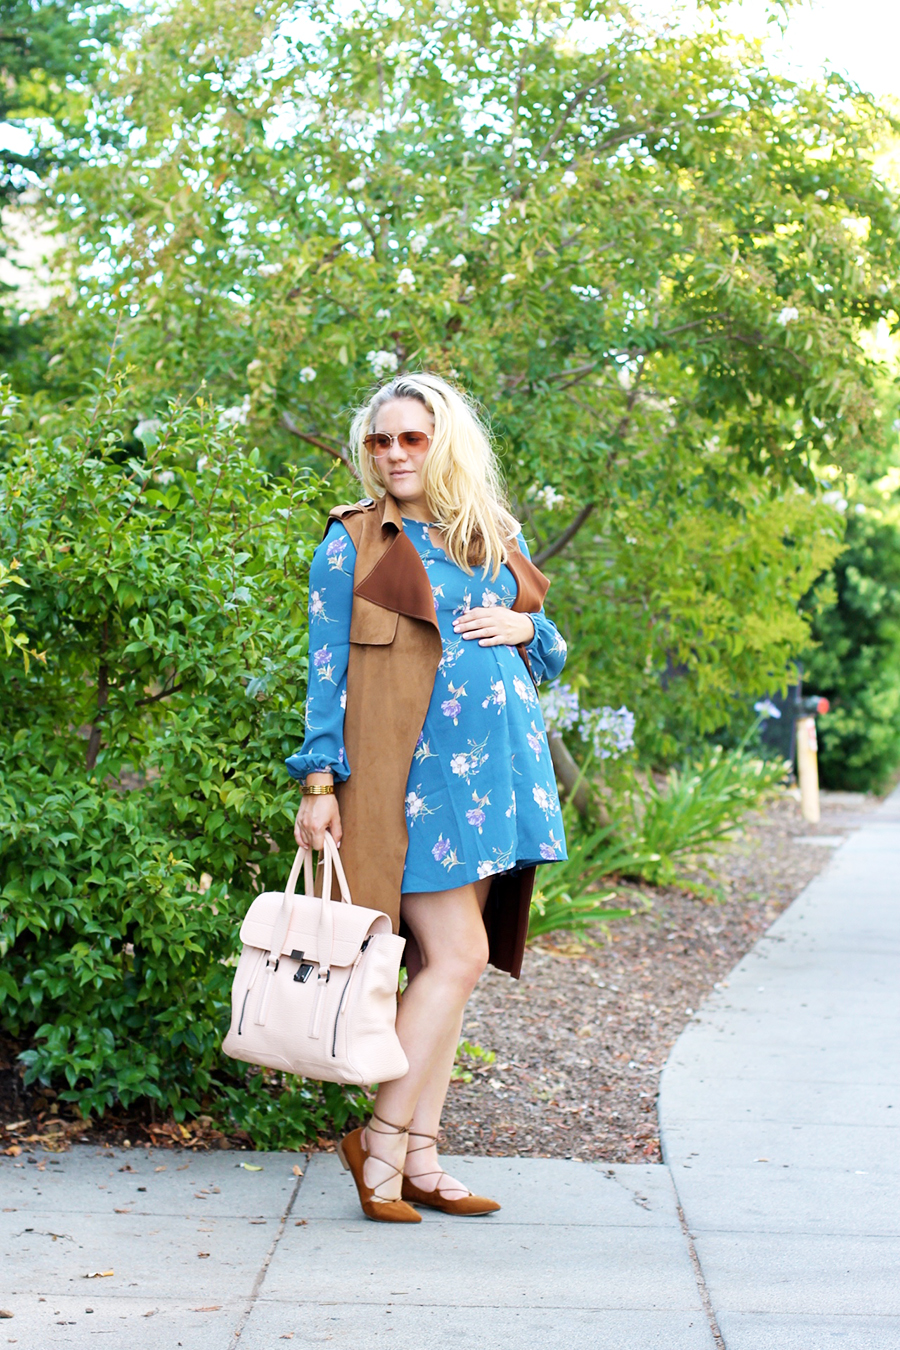 Fall Transition-Nordstrom Anniversary Sale-Maternity Style-Fall Fashion-Have Need Want 8